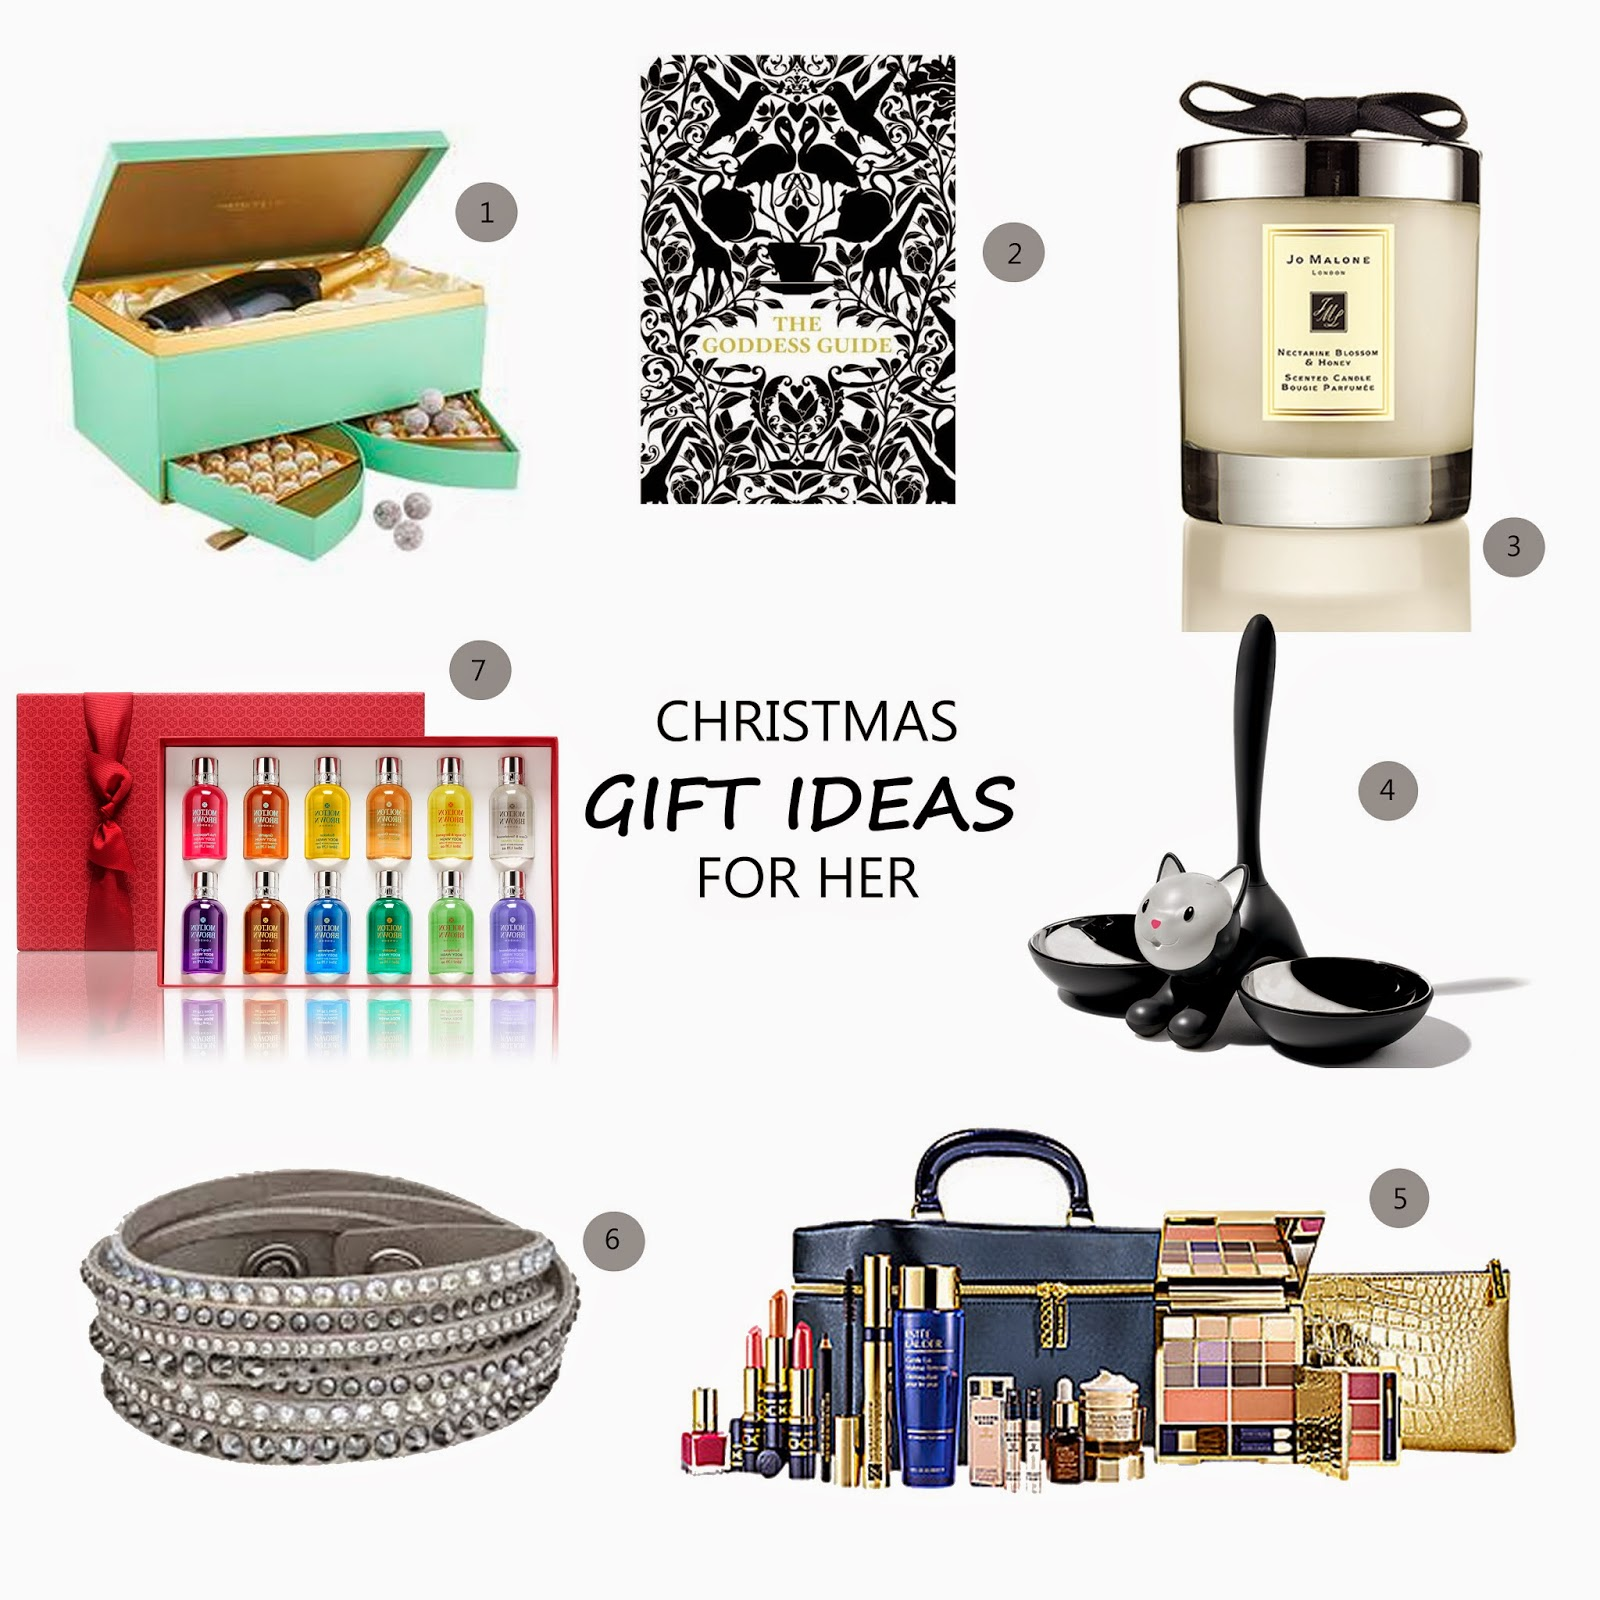 7 Christmas Gift Ideas For Her